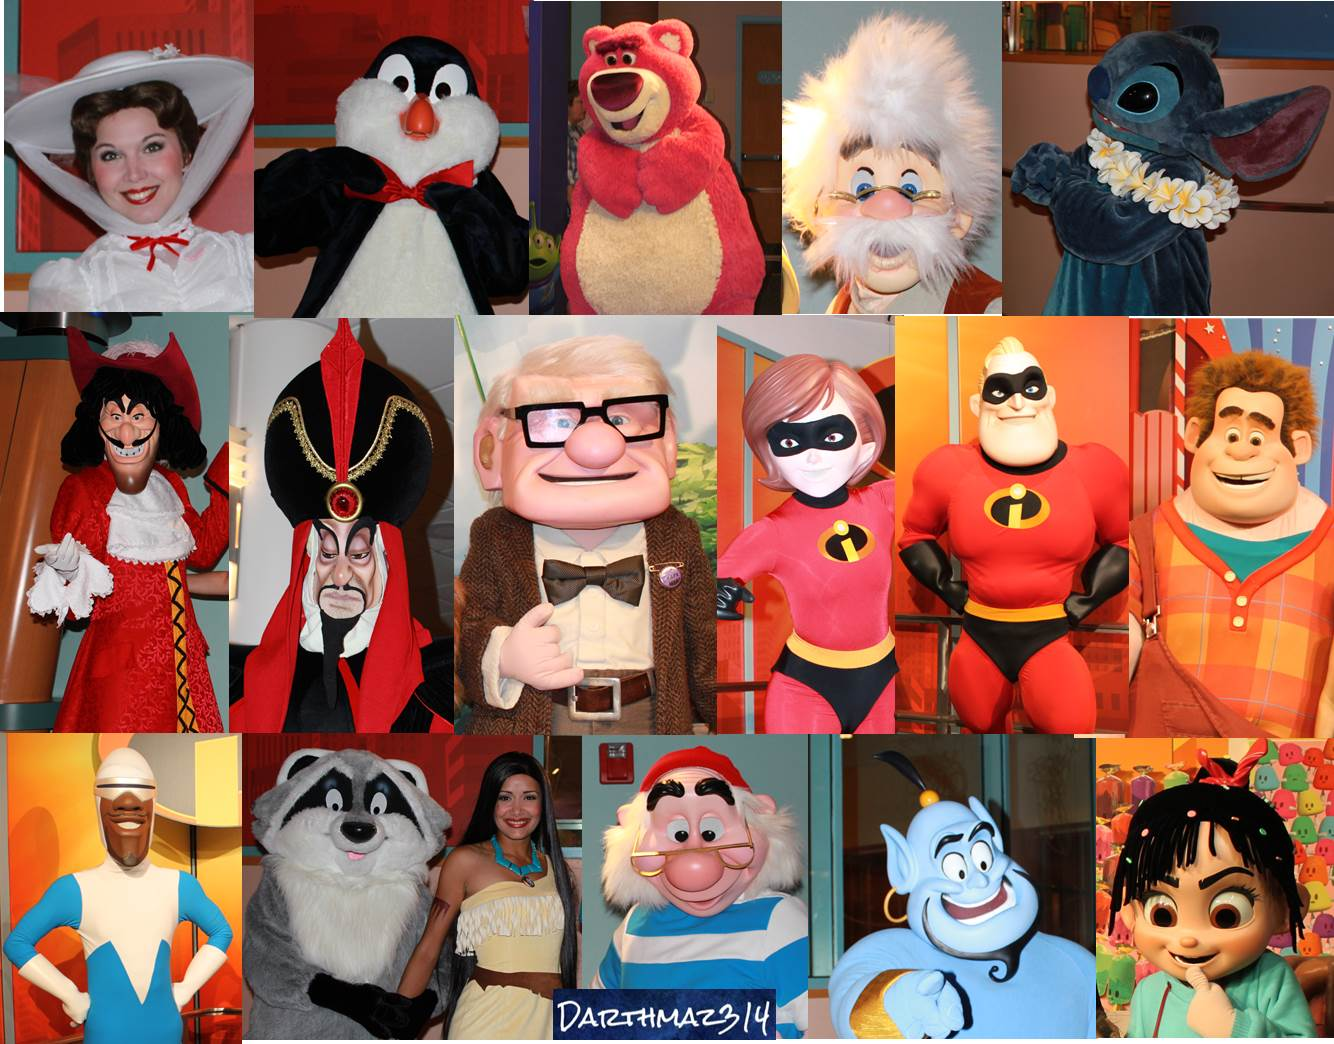 Darthmaz314 july 2015 characters that have appeared at the magic of disney animation meet greet courtesy darthmaz314 kristyandbryce Choice Image